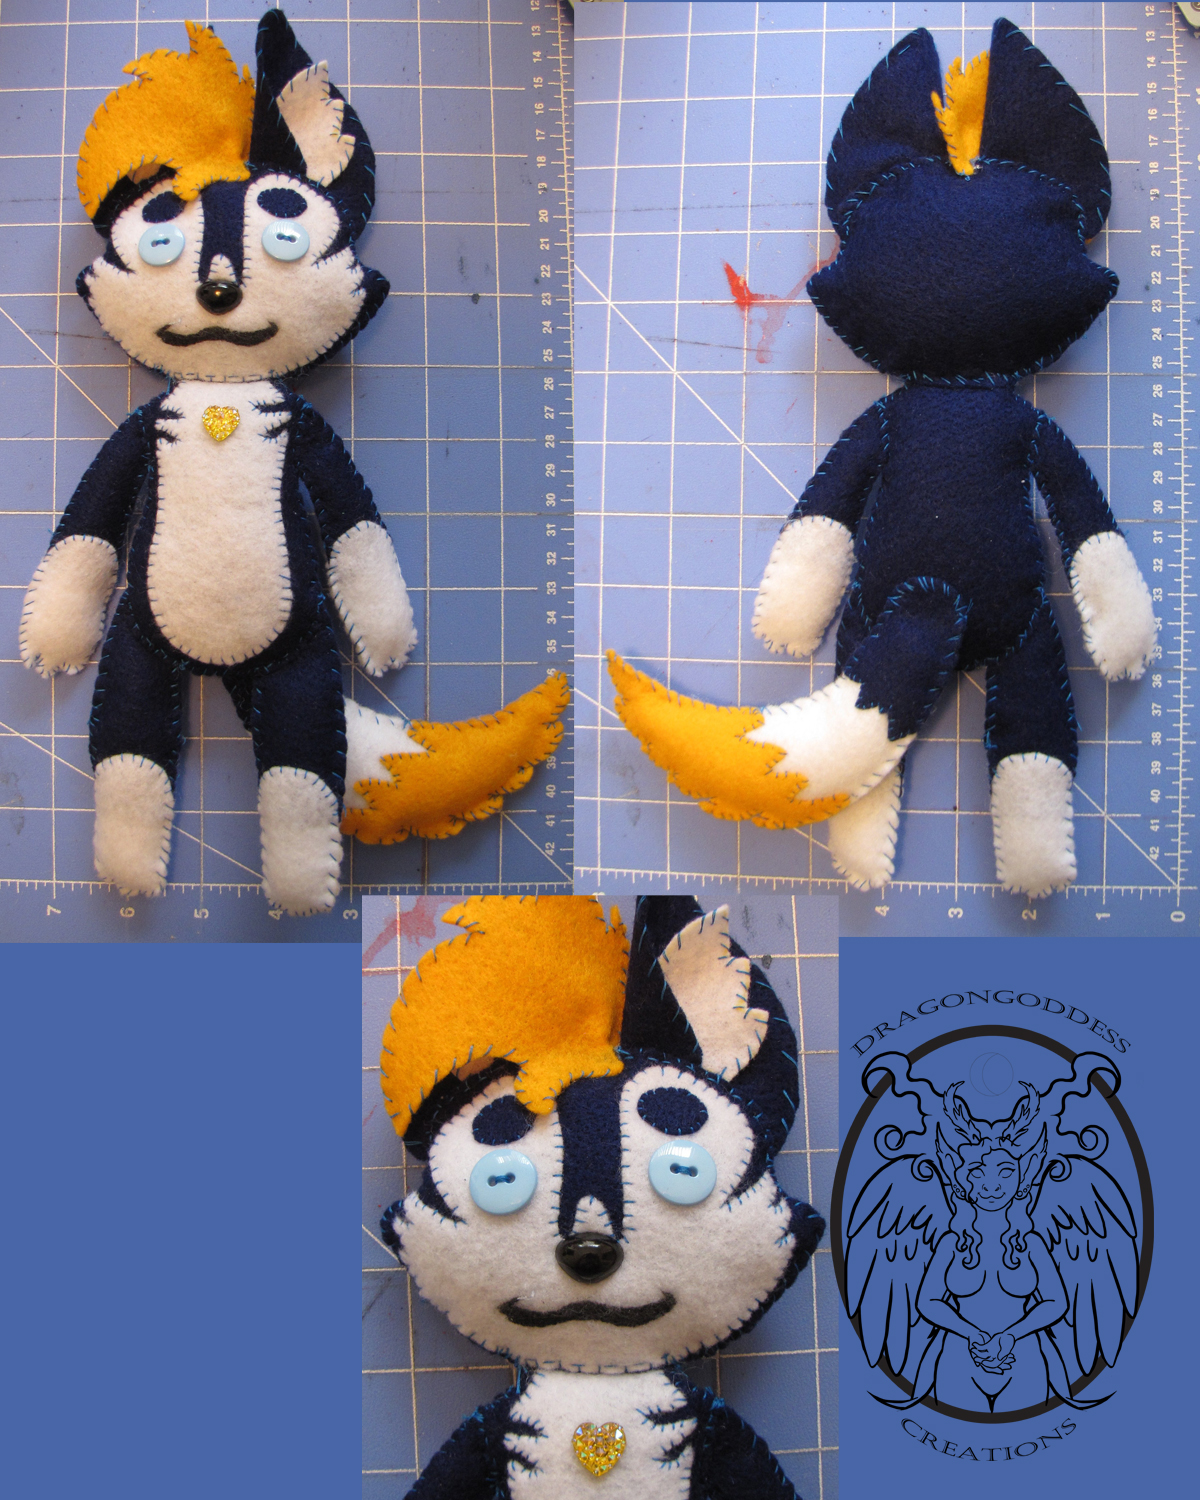 Husky Plushie Commission by dragongoddess